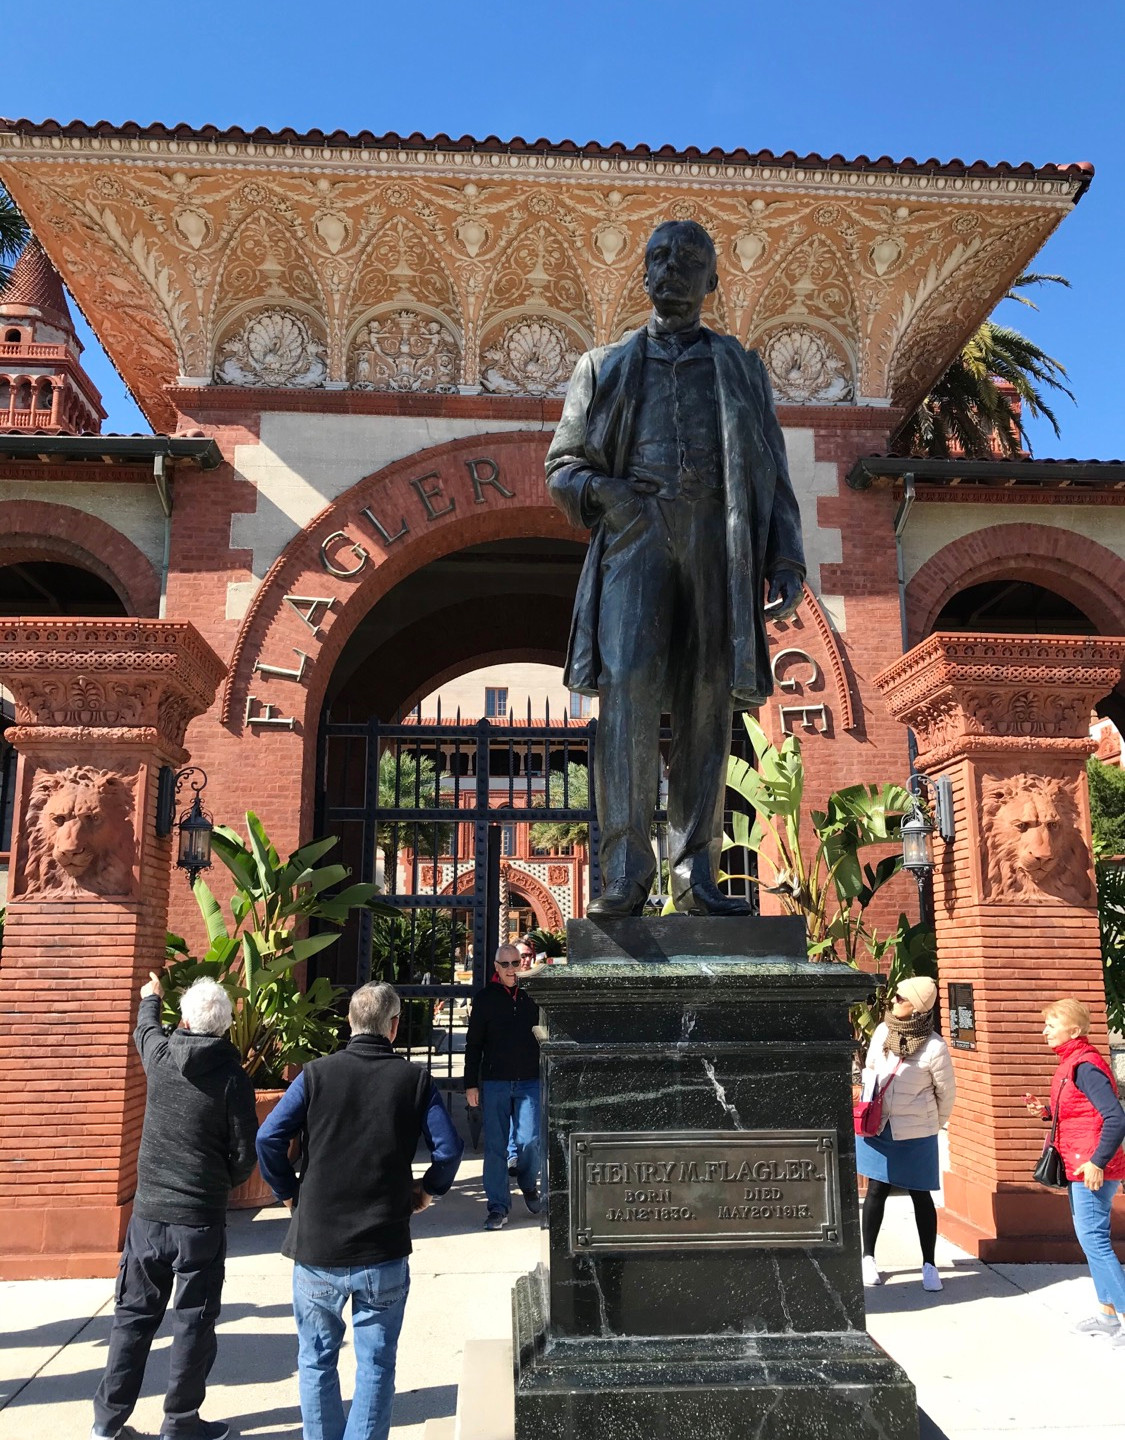 Statue of Henry Flagler in front of college